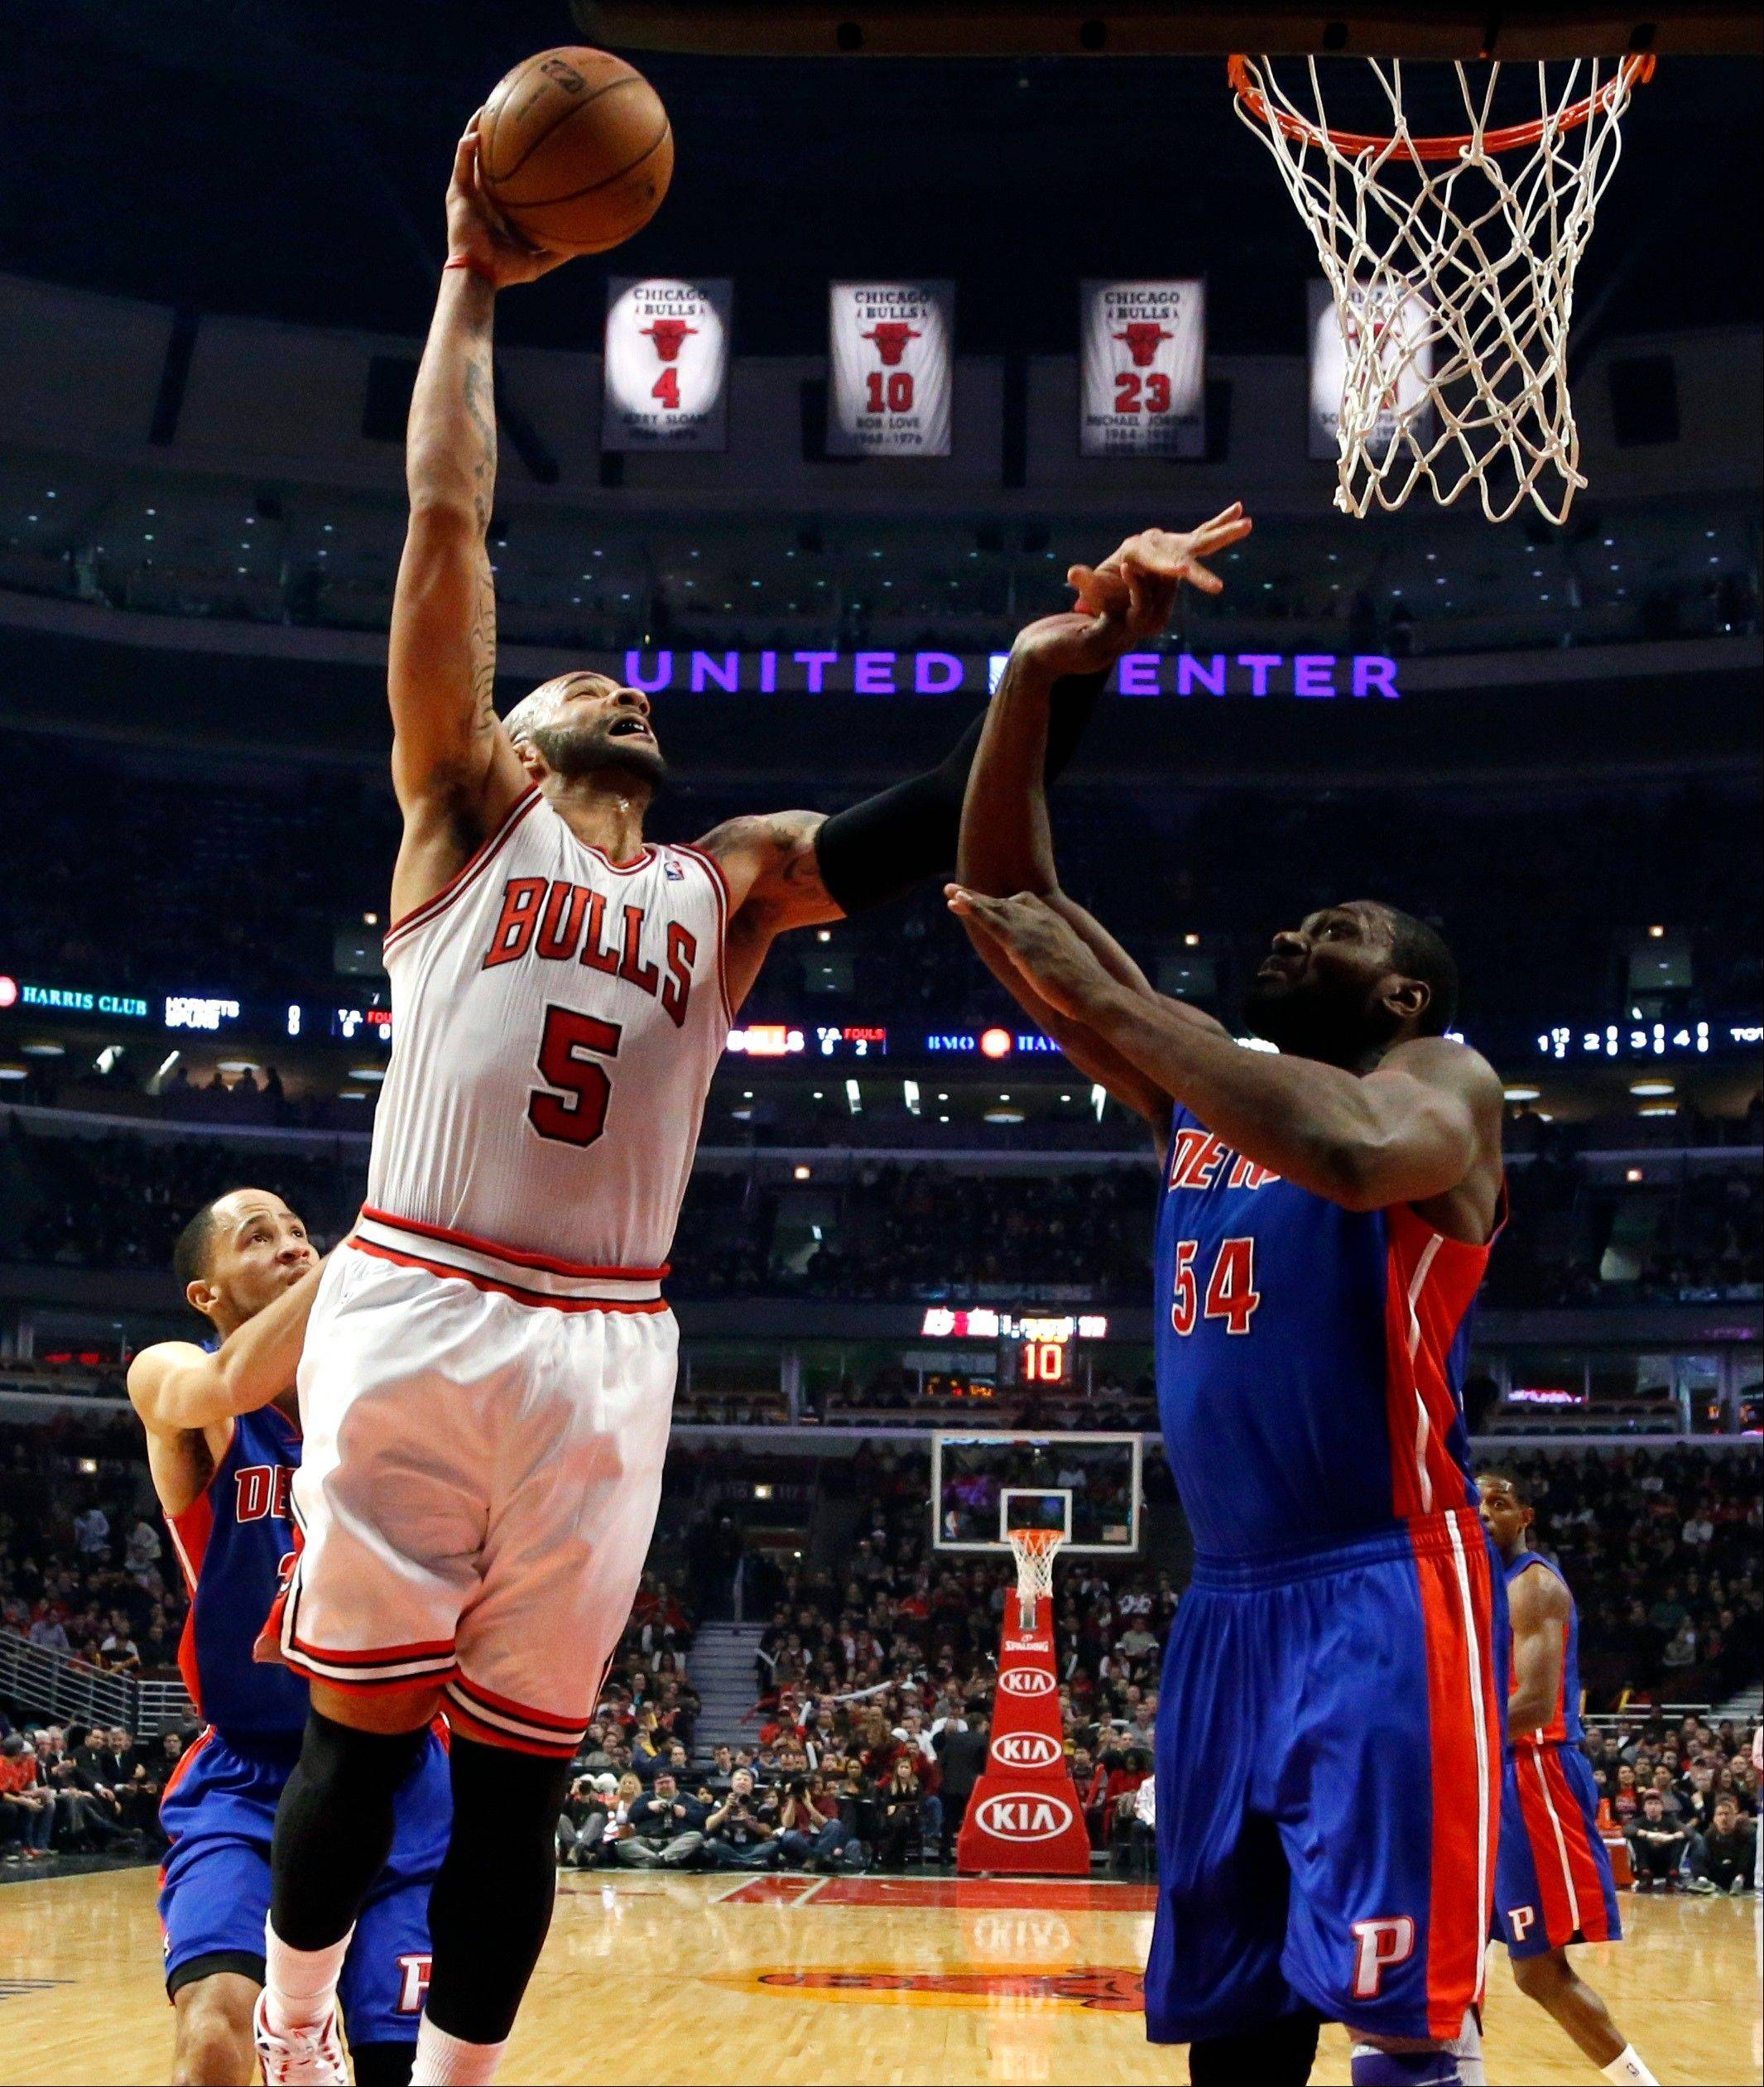 Chicago Bulls forward Carlos Boozer (5) shoots over Detroit Pistons forward Jason Maxiell (54) during the first half of an NBA basketball game, Wednesday, Jan. 23, 2013, in Chicago. Boozer could be named when the NBA�s all-star reserves are announced Thursday on TNT, starting a 6 p.m.